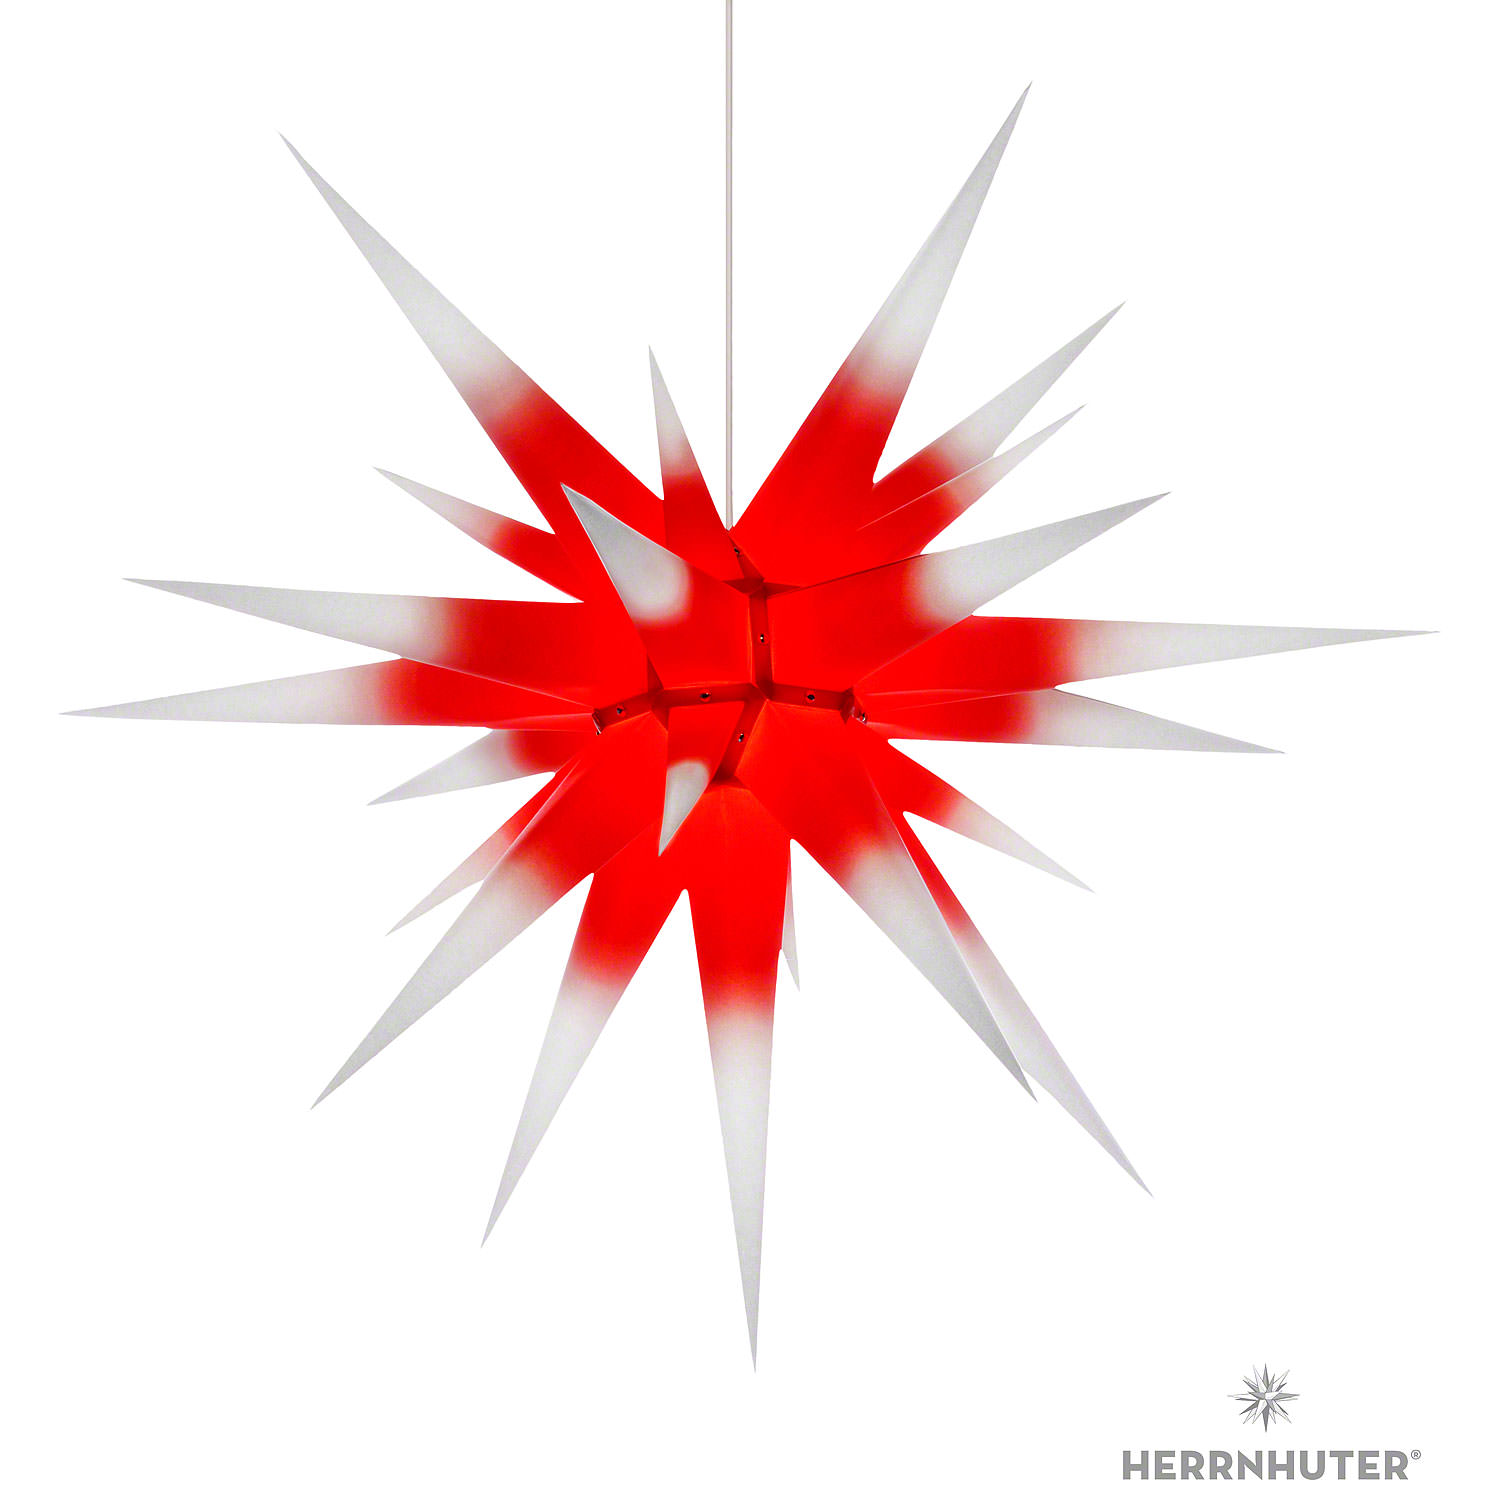 Herrnhuter Moravian Star I8 White With Red Core Paper 80cm31in By